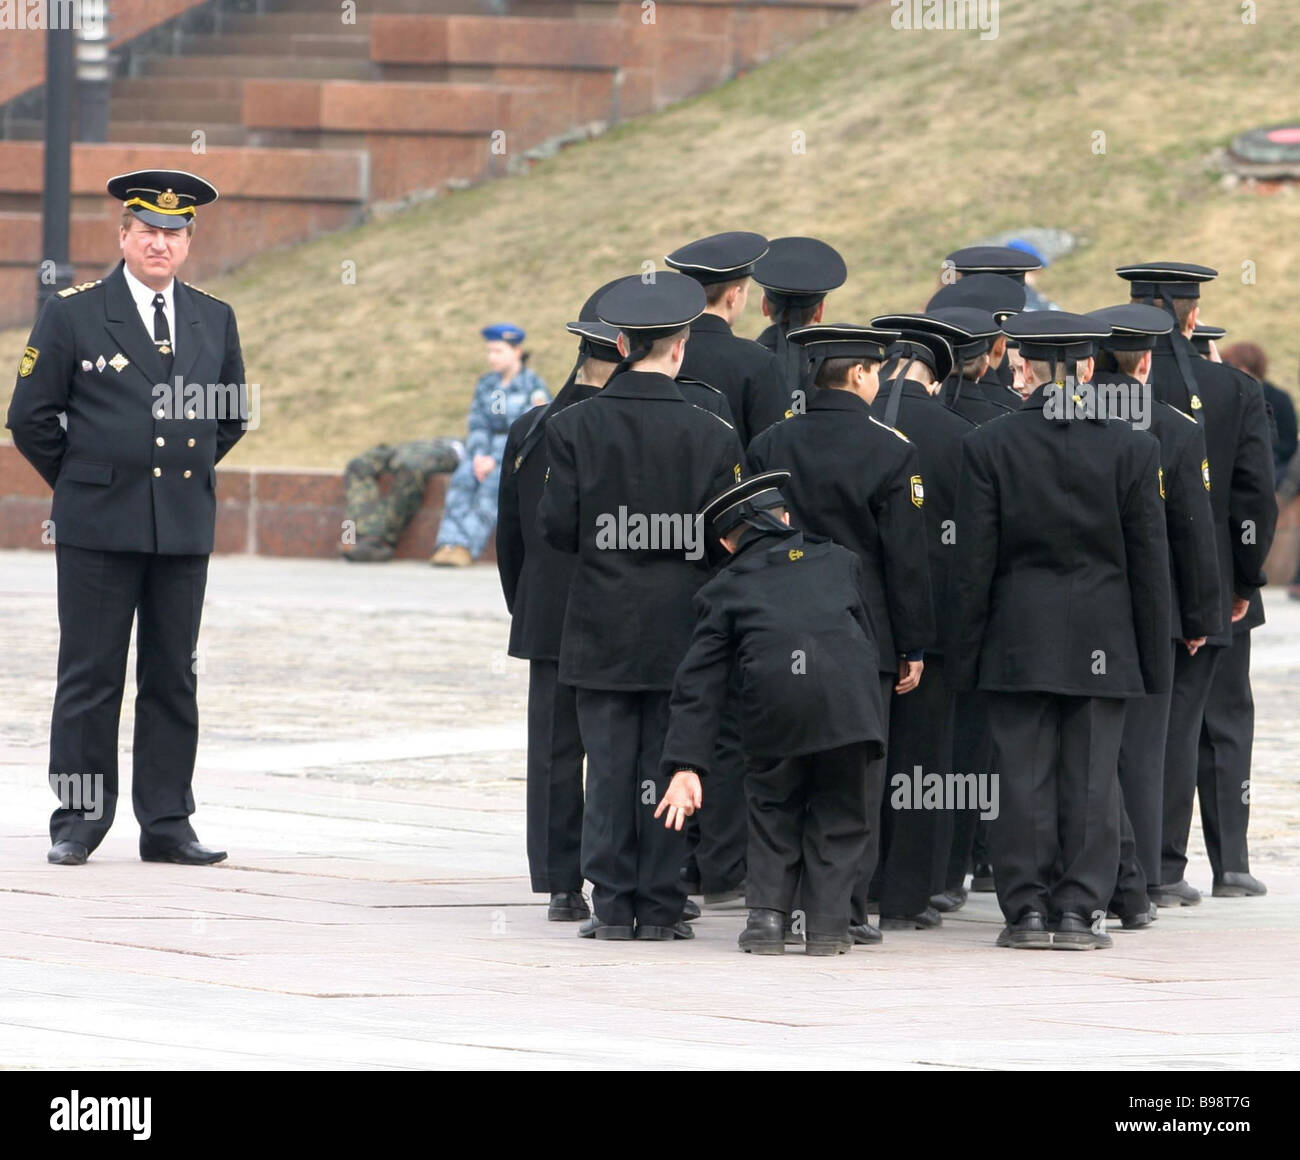 Members of patriotic service clubs educational institutions and Cadet schools students at the gala parade - Stock Image